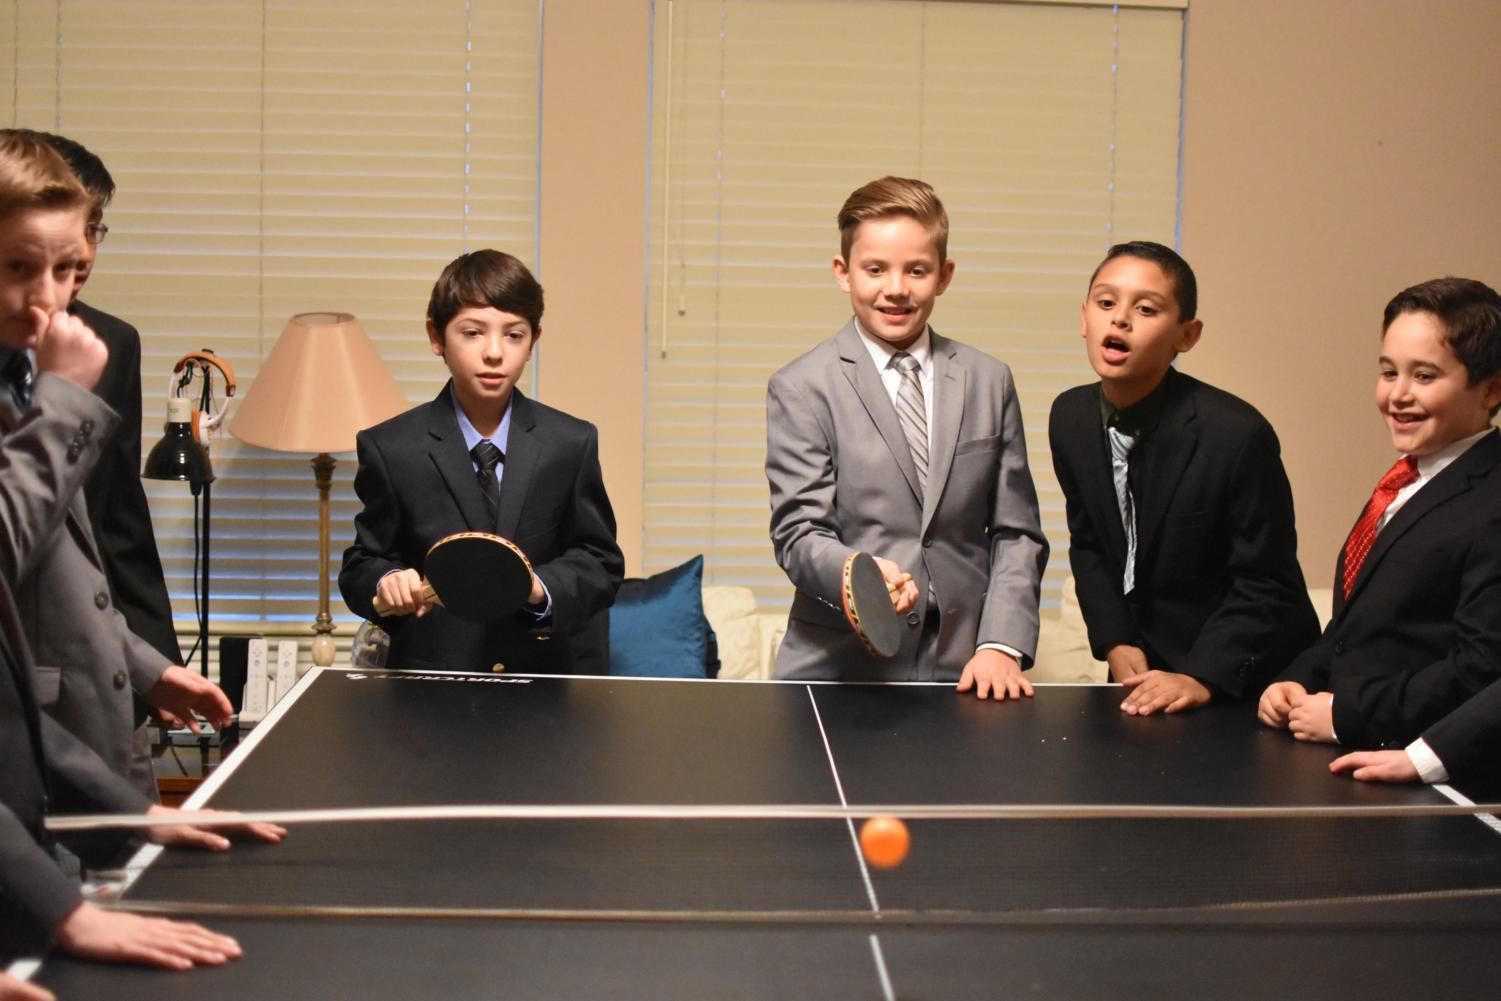 Lakeside+Elementary+students+play+ping+pong+on+Feb.+23+before+Friday+night+Cotillion+to+have+snacks+and+interact+with+each+other+along+with+parents.+Cotillion+is+a+class%2C+typically+for+elementary+or+middle+school+kids%2C+in+which+they+learn+basic+table+manners%2C+social+manners+and+formal+dances.